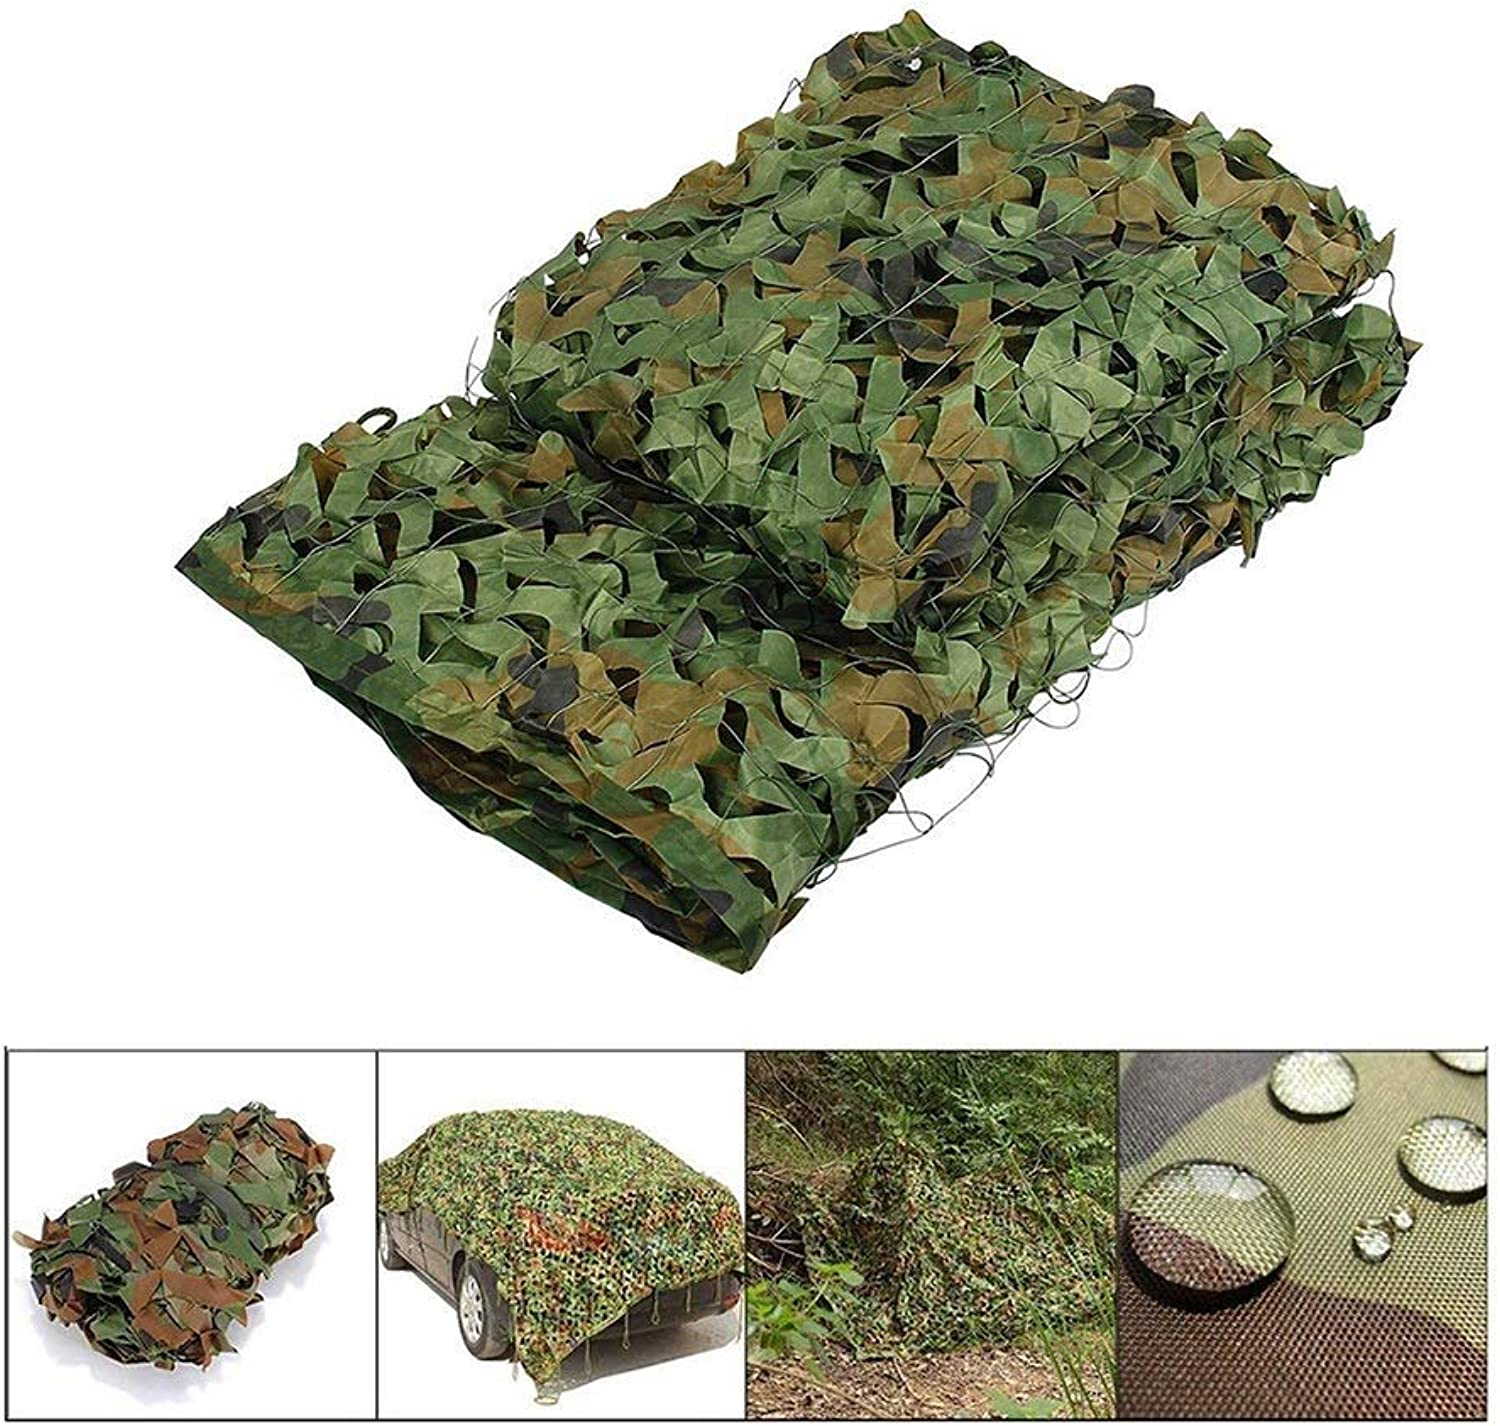 Camouflage net Camouflage Net, Camouflage Net Cover Shade Net for Outdoor Wedding Party Hunting Camping Military Vehicle Awning (MultiSize Optional)